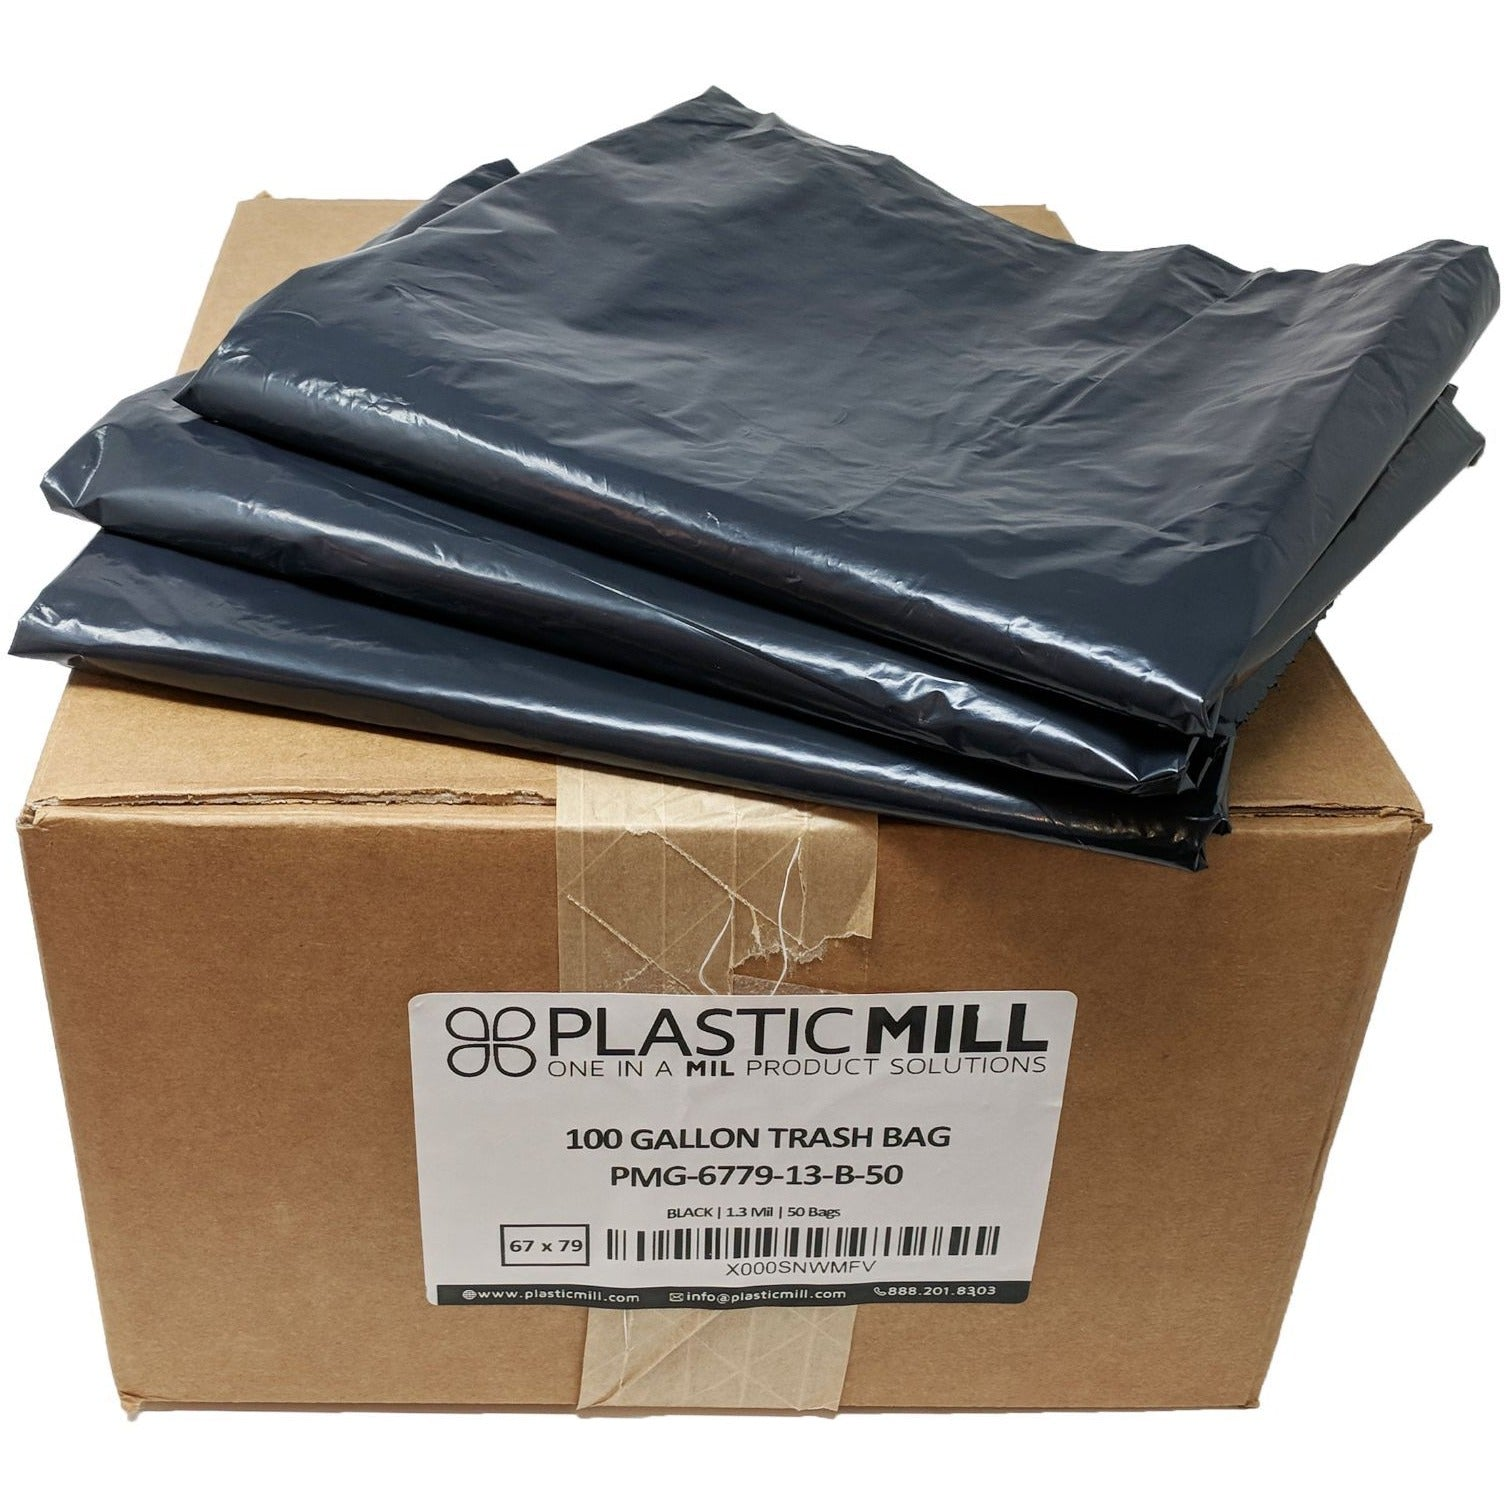 100 gallon garbage bags gang folded black 1 3 mil 67x79 50 bags plasticmill. Black Bedroom Furniture Sets. Home Design Ideas